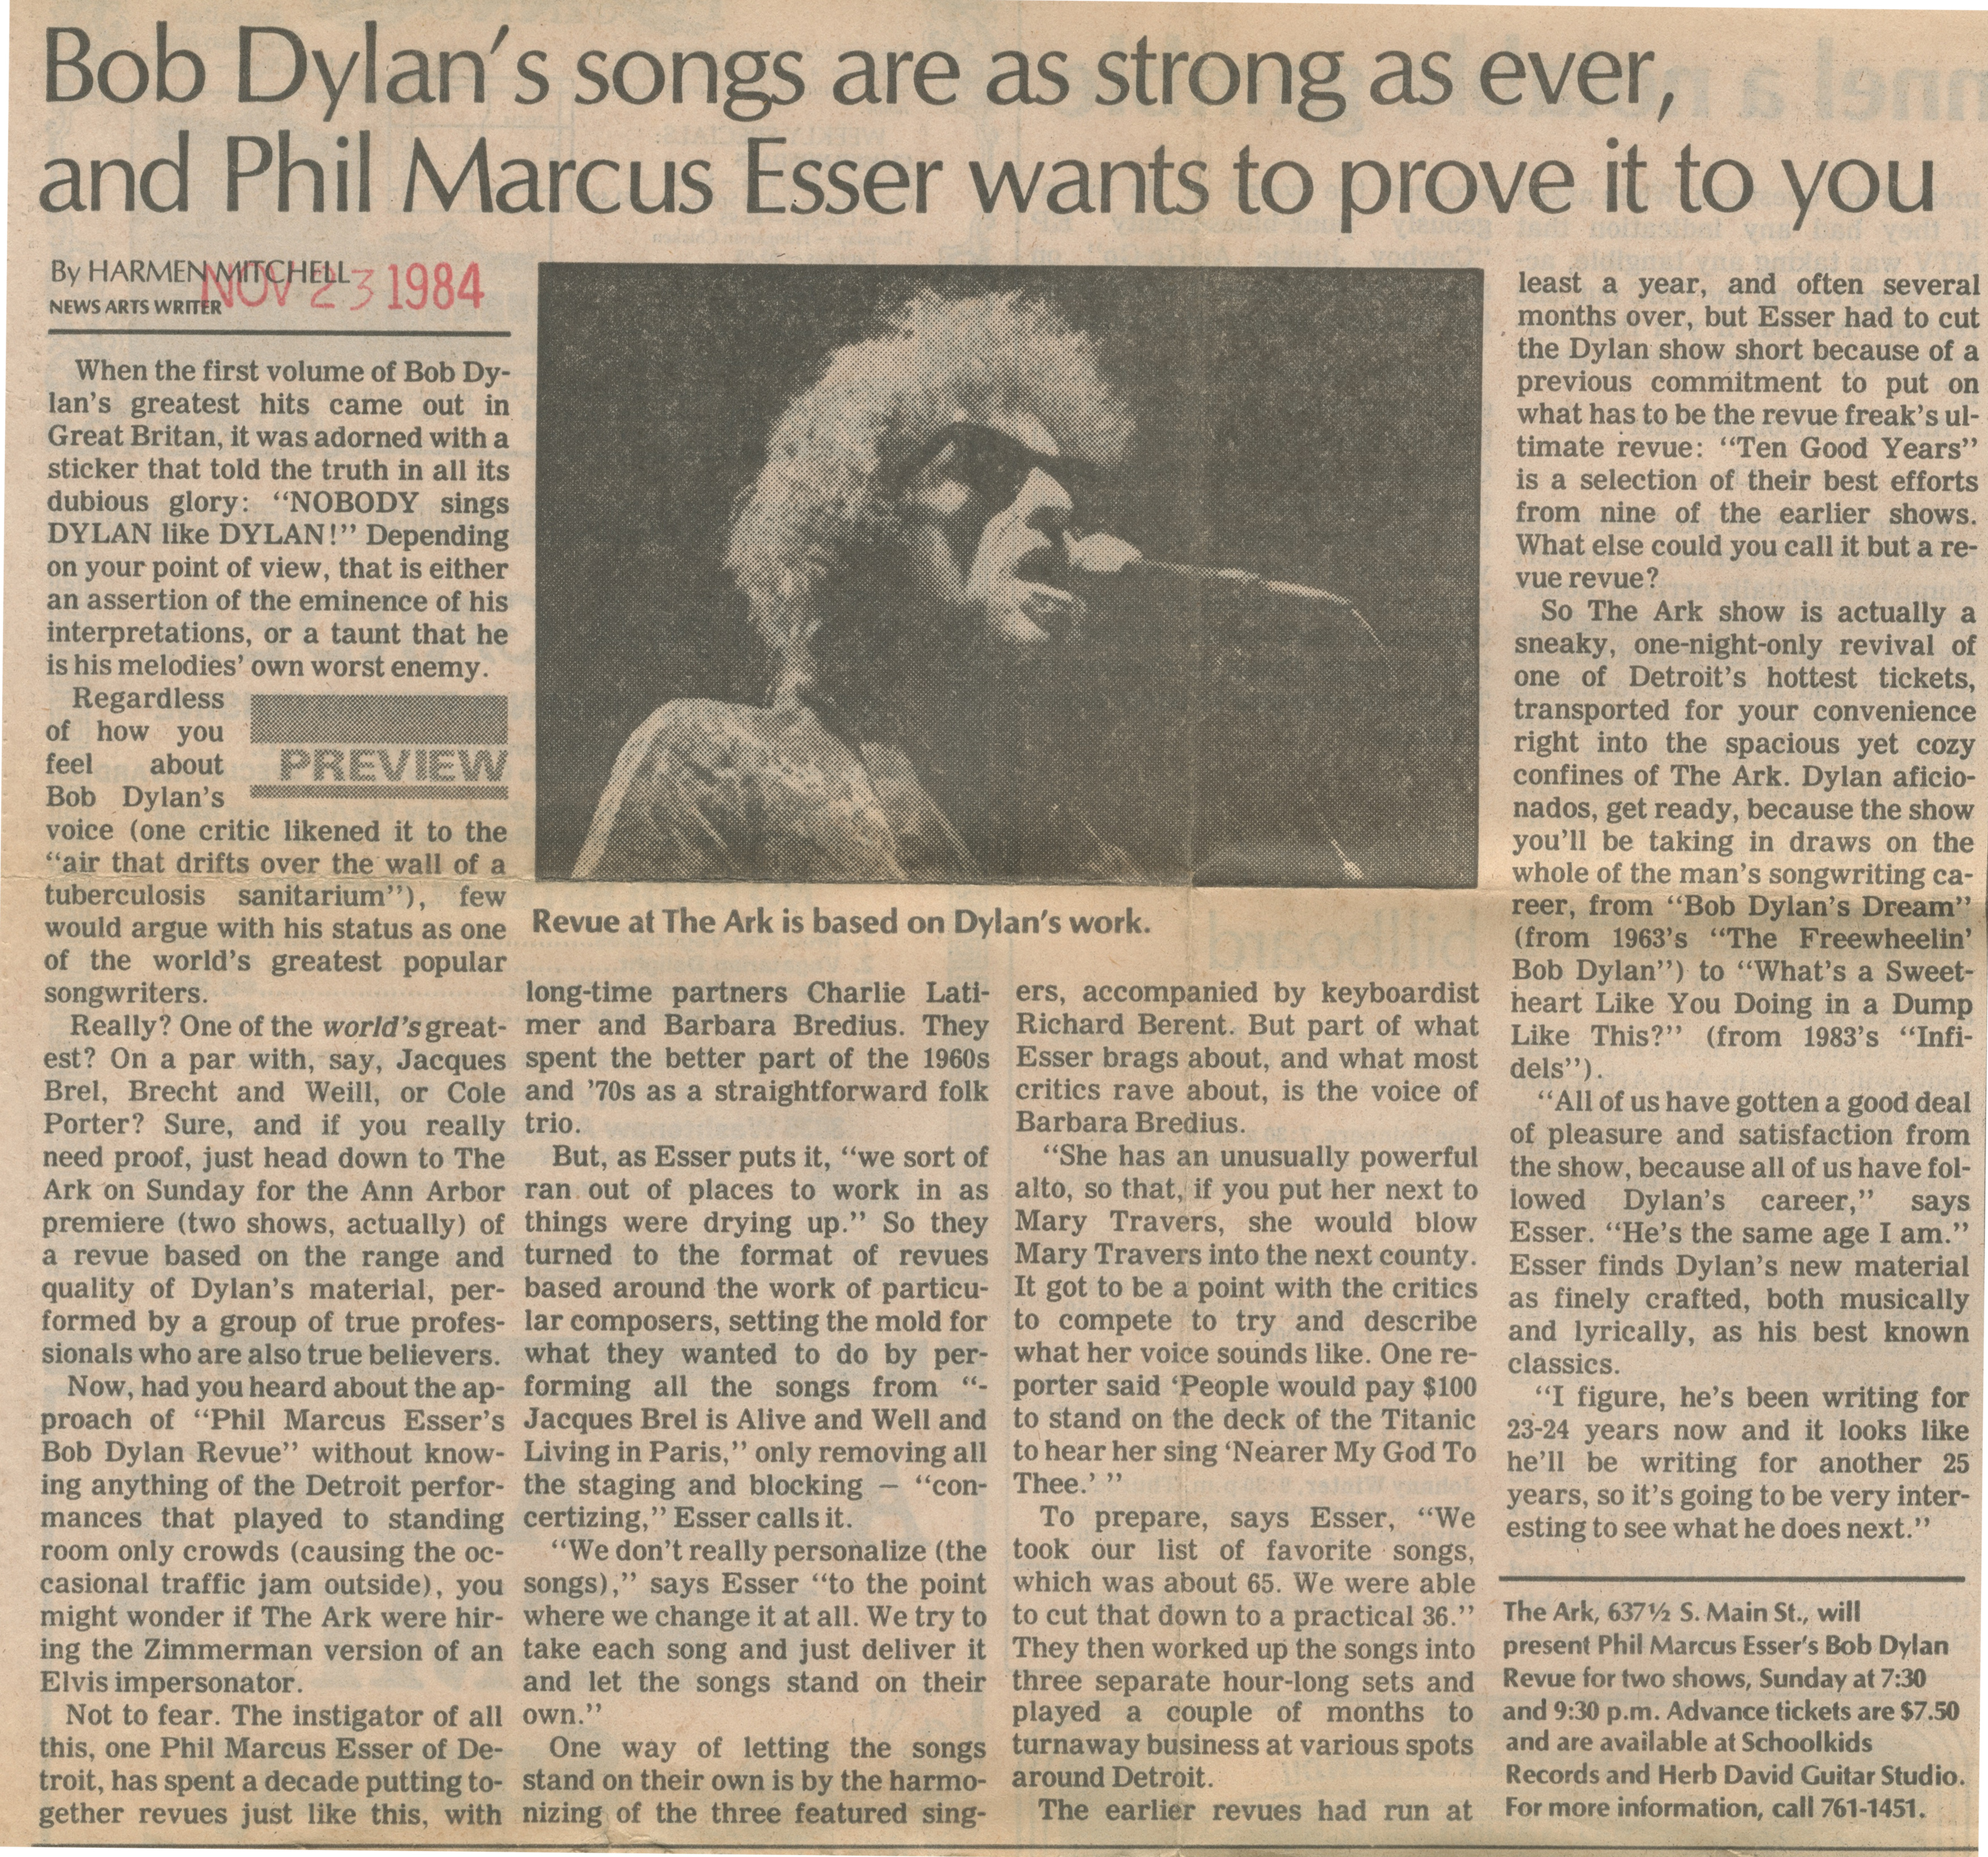 Bob Dylan's Songs Are As Strong As Ever, And Phil Marcus Esser Wants To Prove It To You image